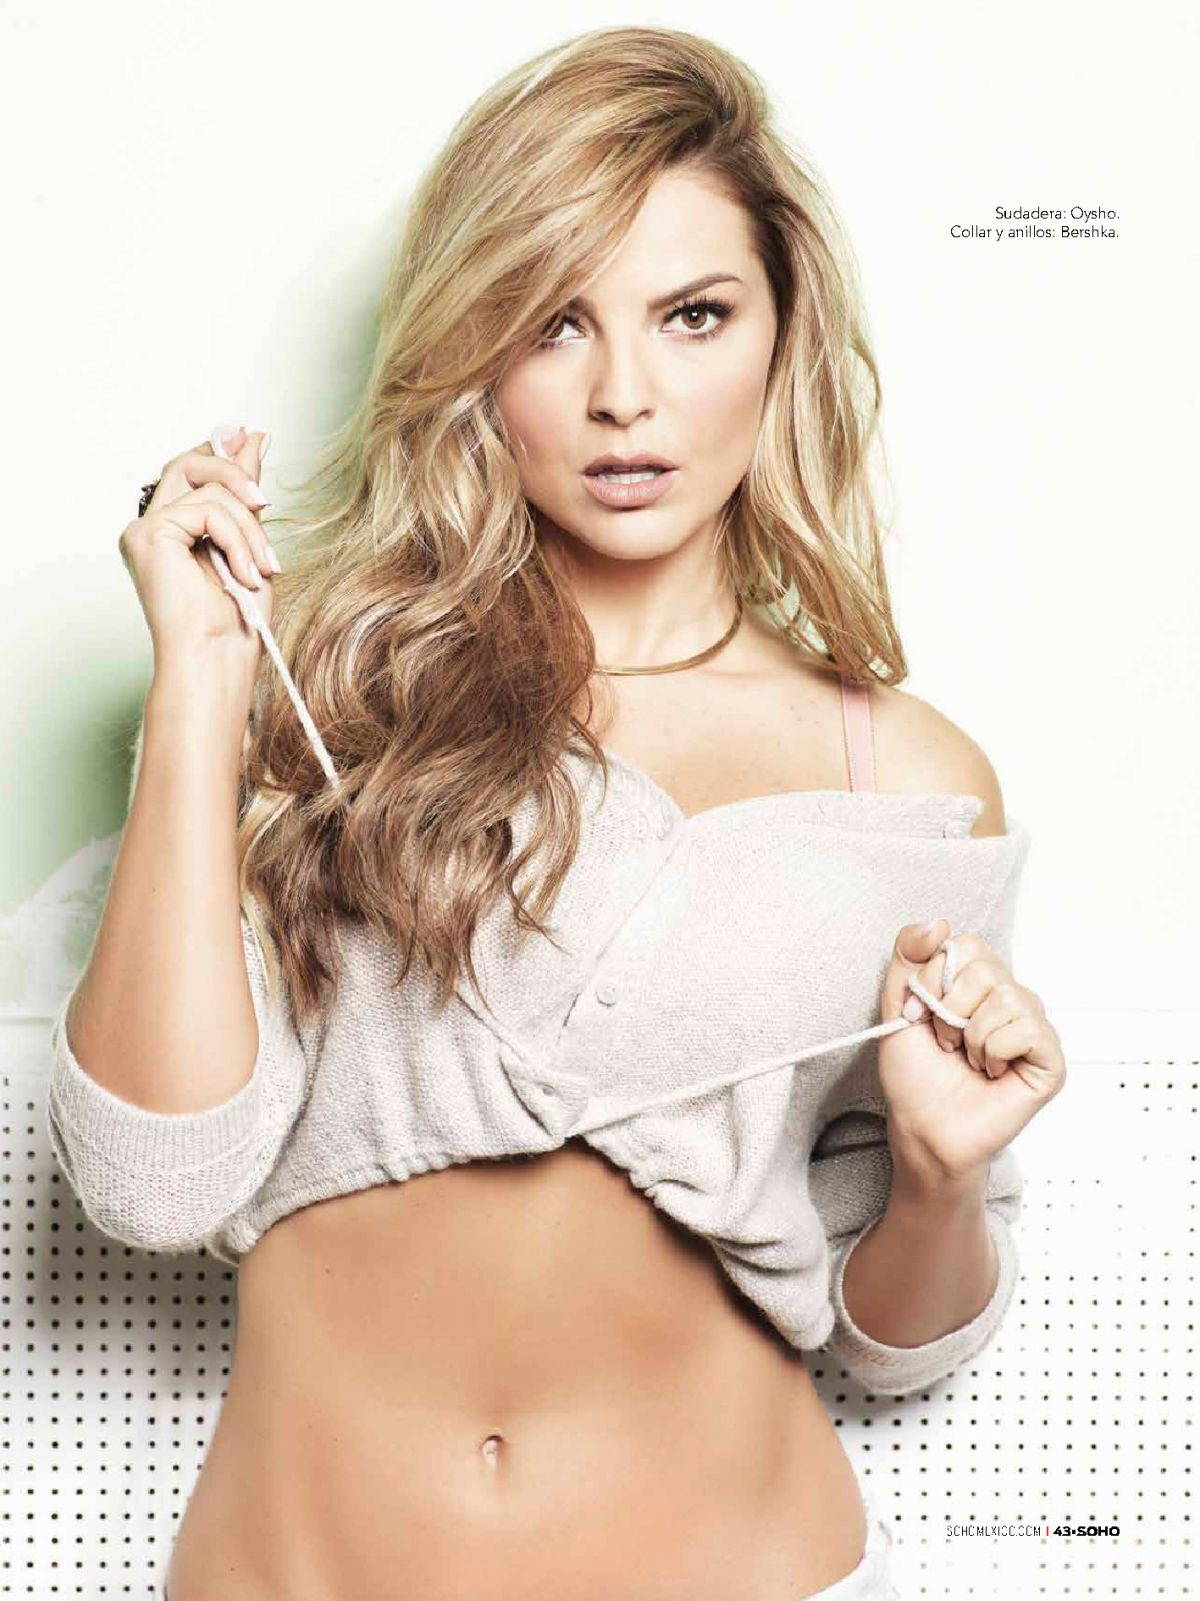 MARJORIE DE SOUSA in Soho Magazine, Mexico December 2015 Issue